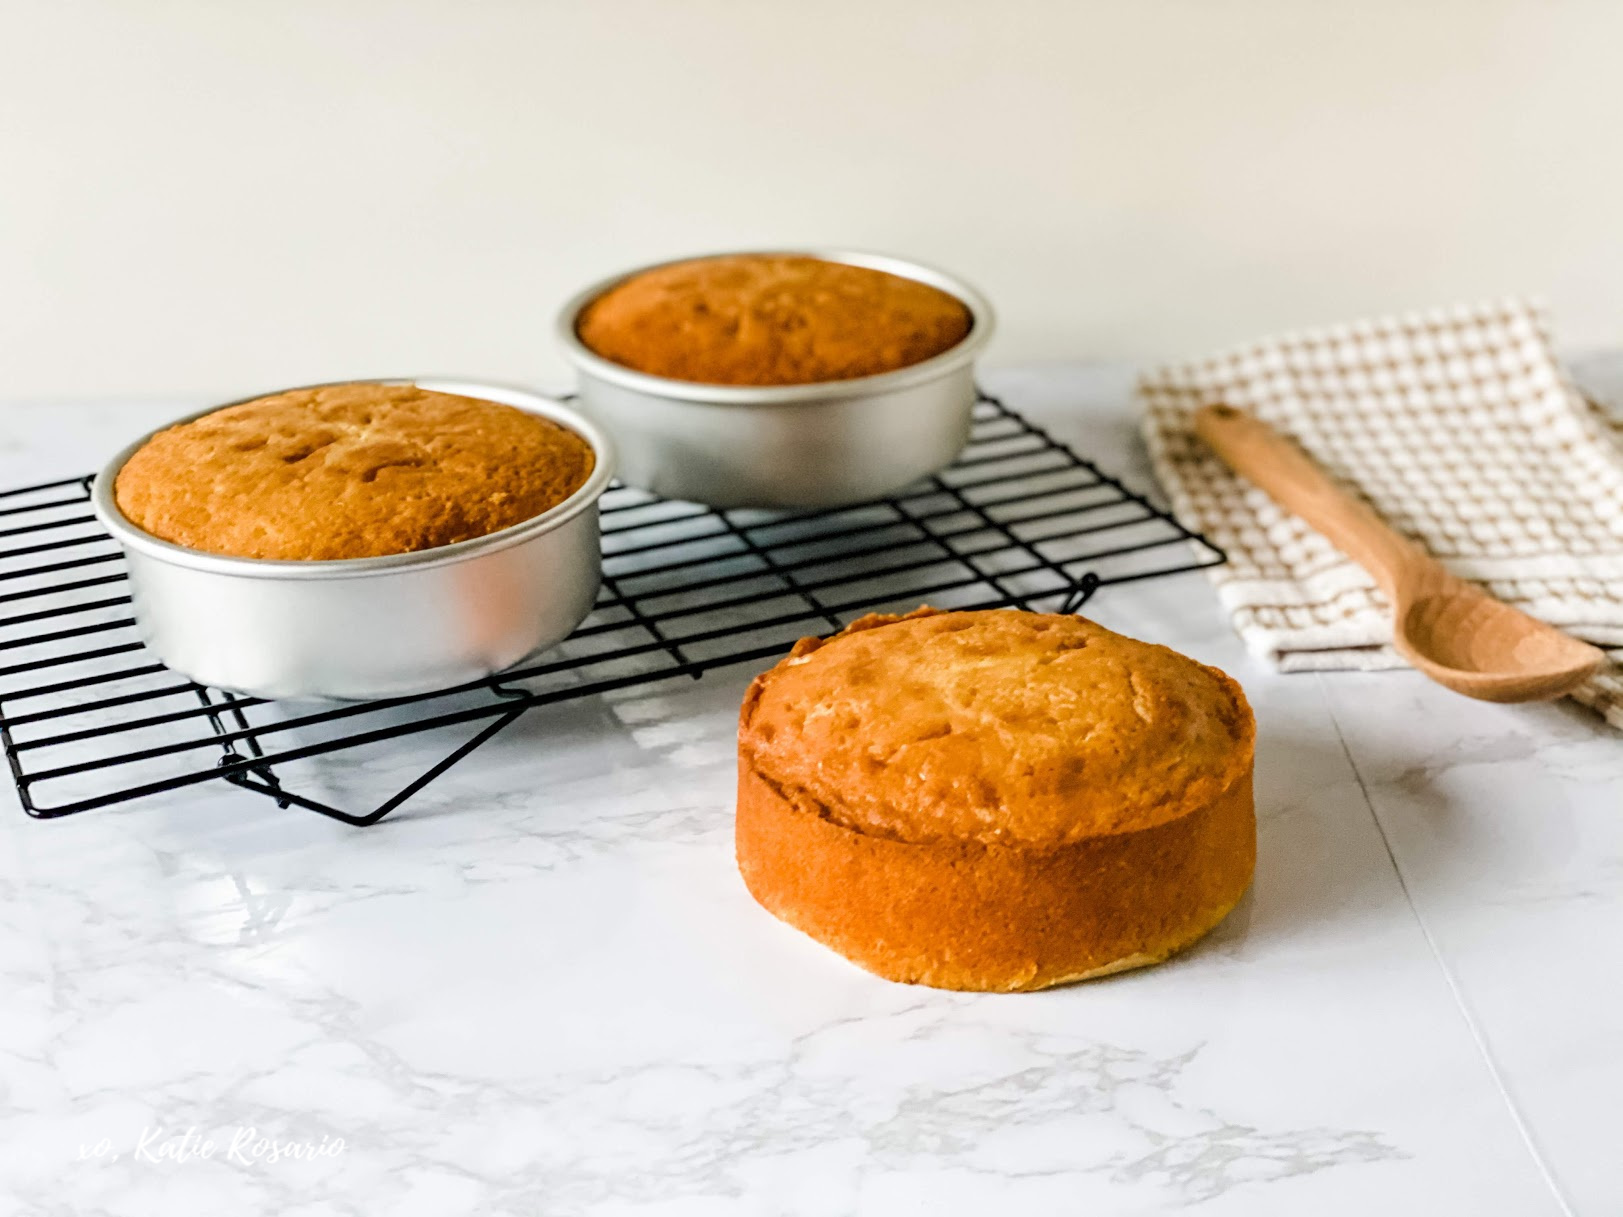 For beginner bakers, it can be intimidating to make your first cake from scratch. This vanilla cake recipe is perfect for the beginner home baker. My goal is to teach you foundation steps so you feel like you can make any cake, even vanilla. You can use this vanilla cake recipe for cupcakes or turn into a sheet cake for a larger crowd. #xokatierosario #cakedecoratingtips #vanillacake #madefromscratch #vanillacakerecipe